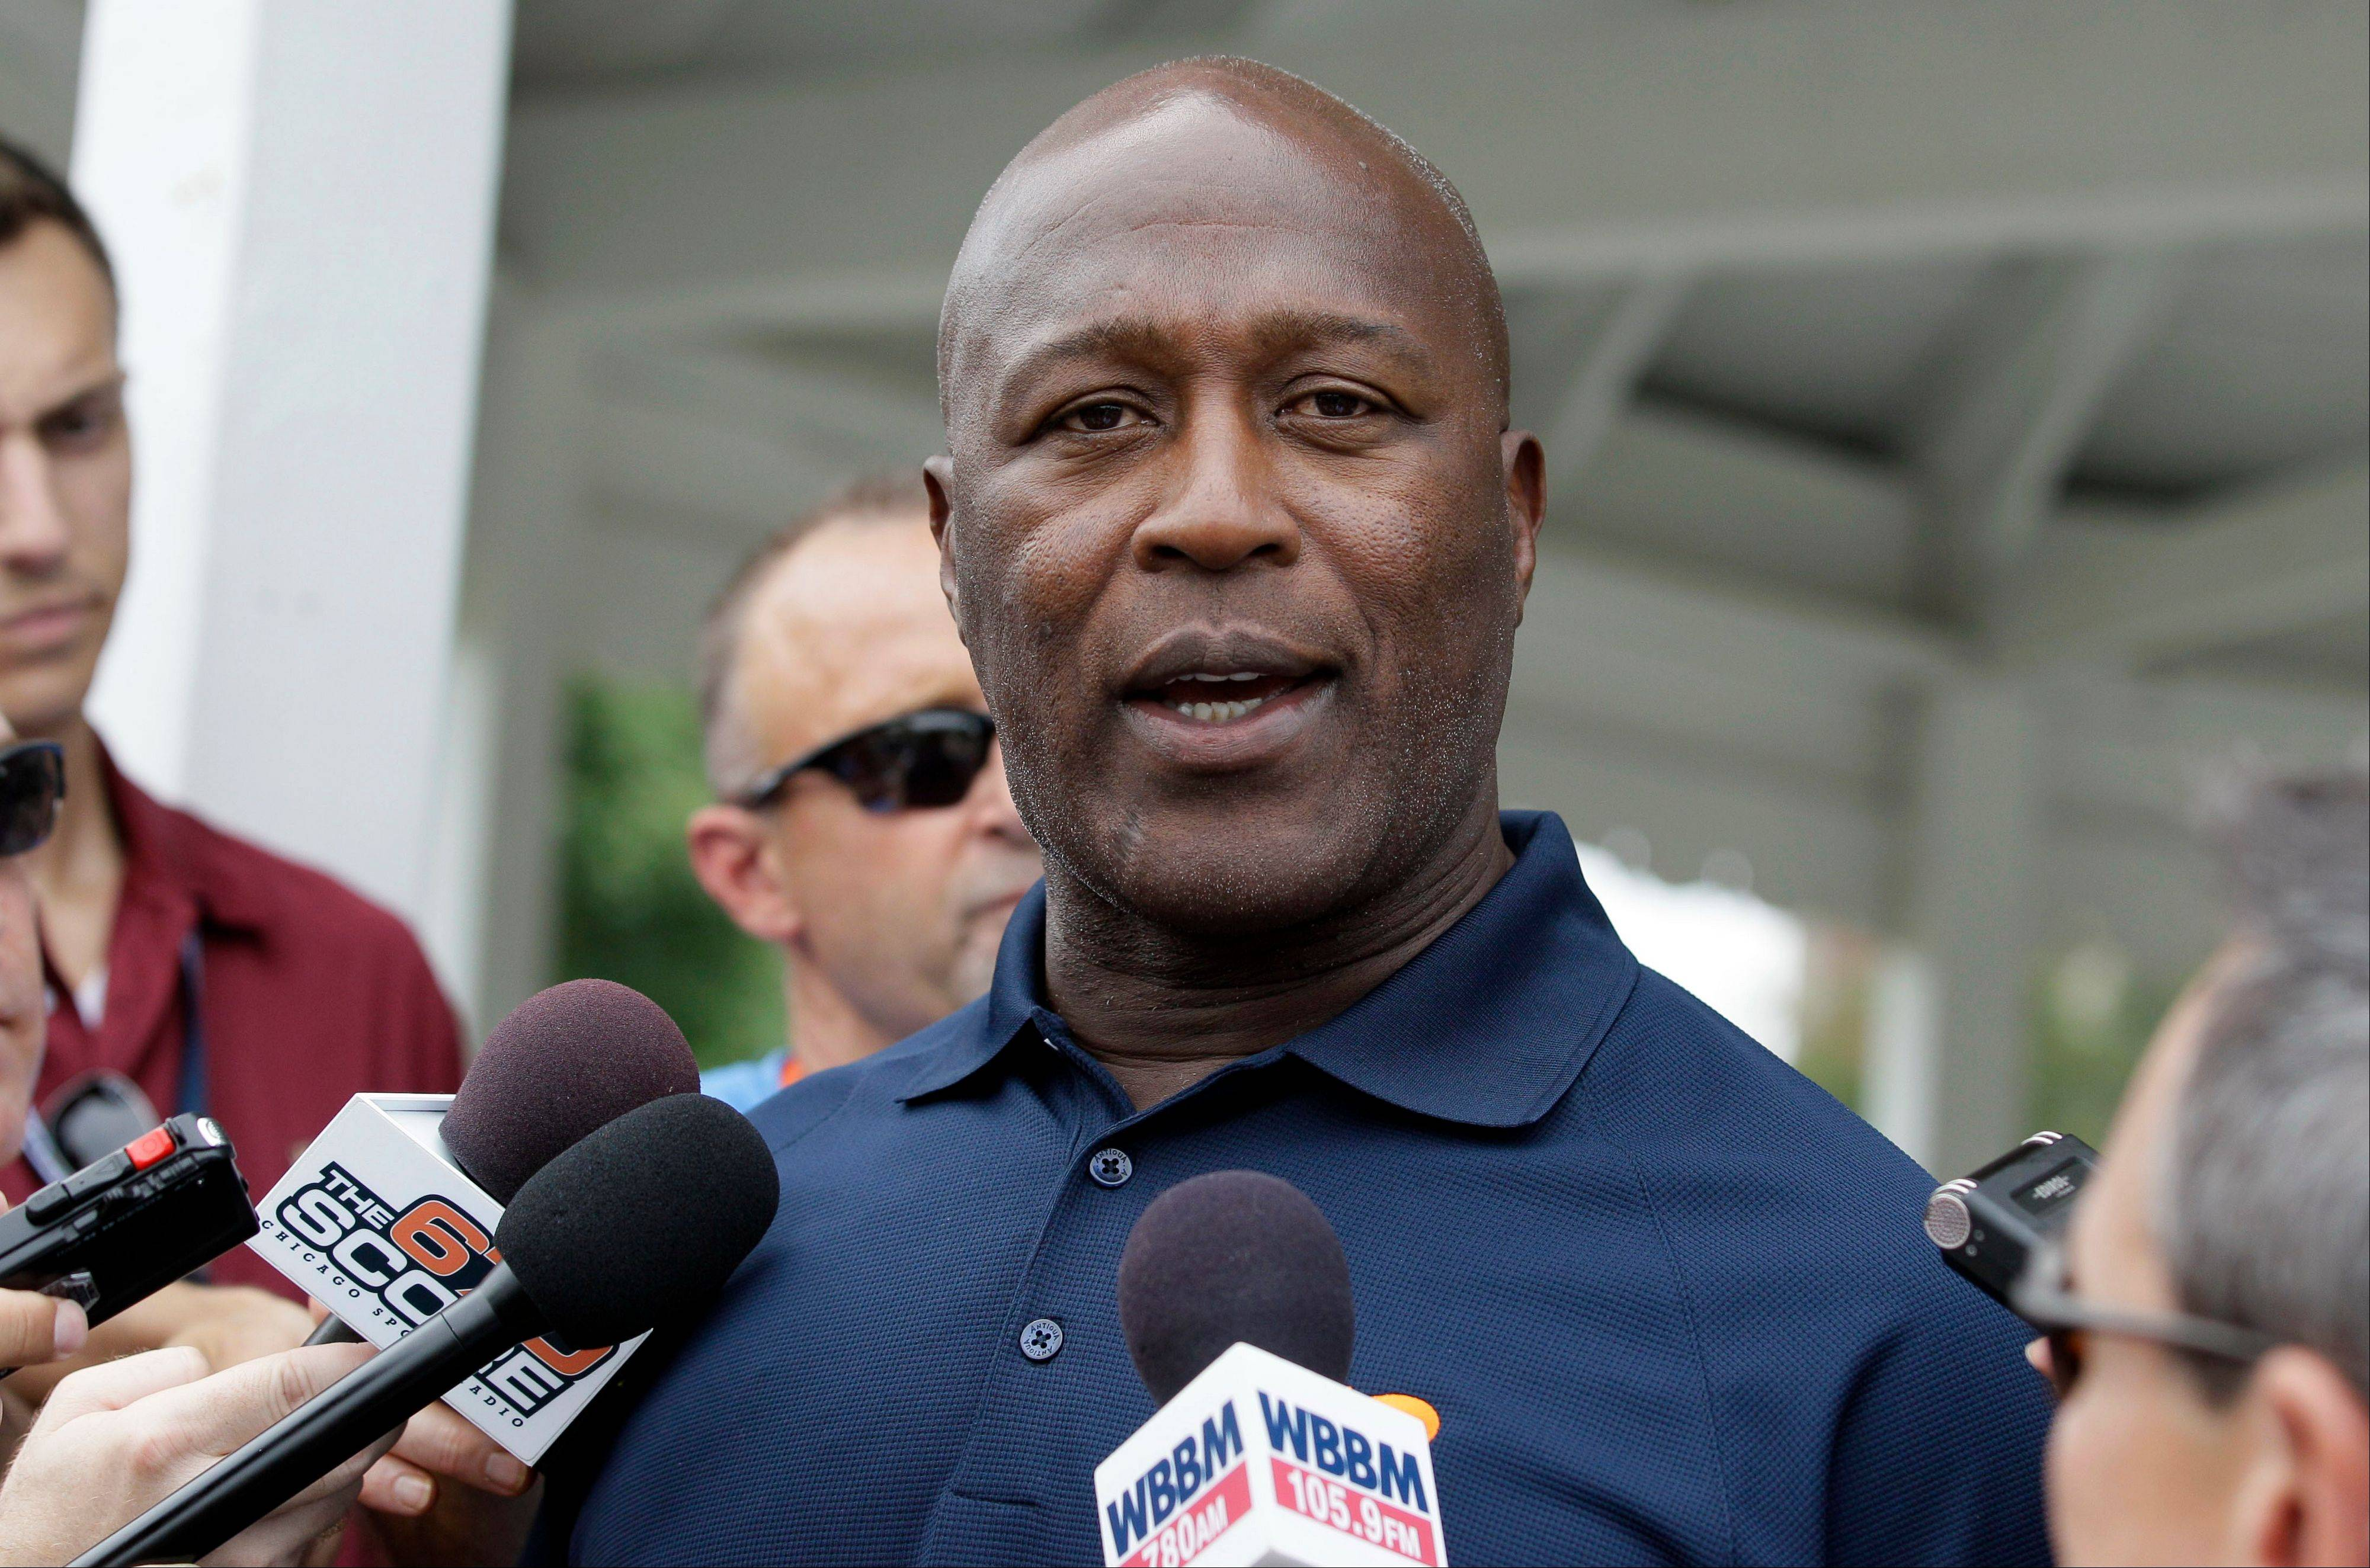 Bears coach Lovie Smith, who is in the last year of his contract, says there's always pressure in Chicago to succeed.